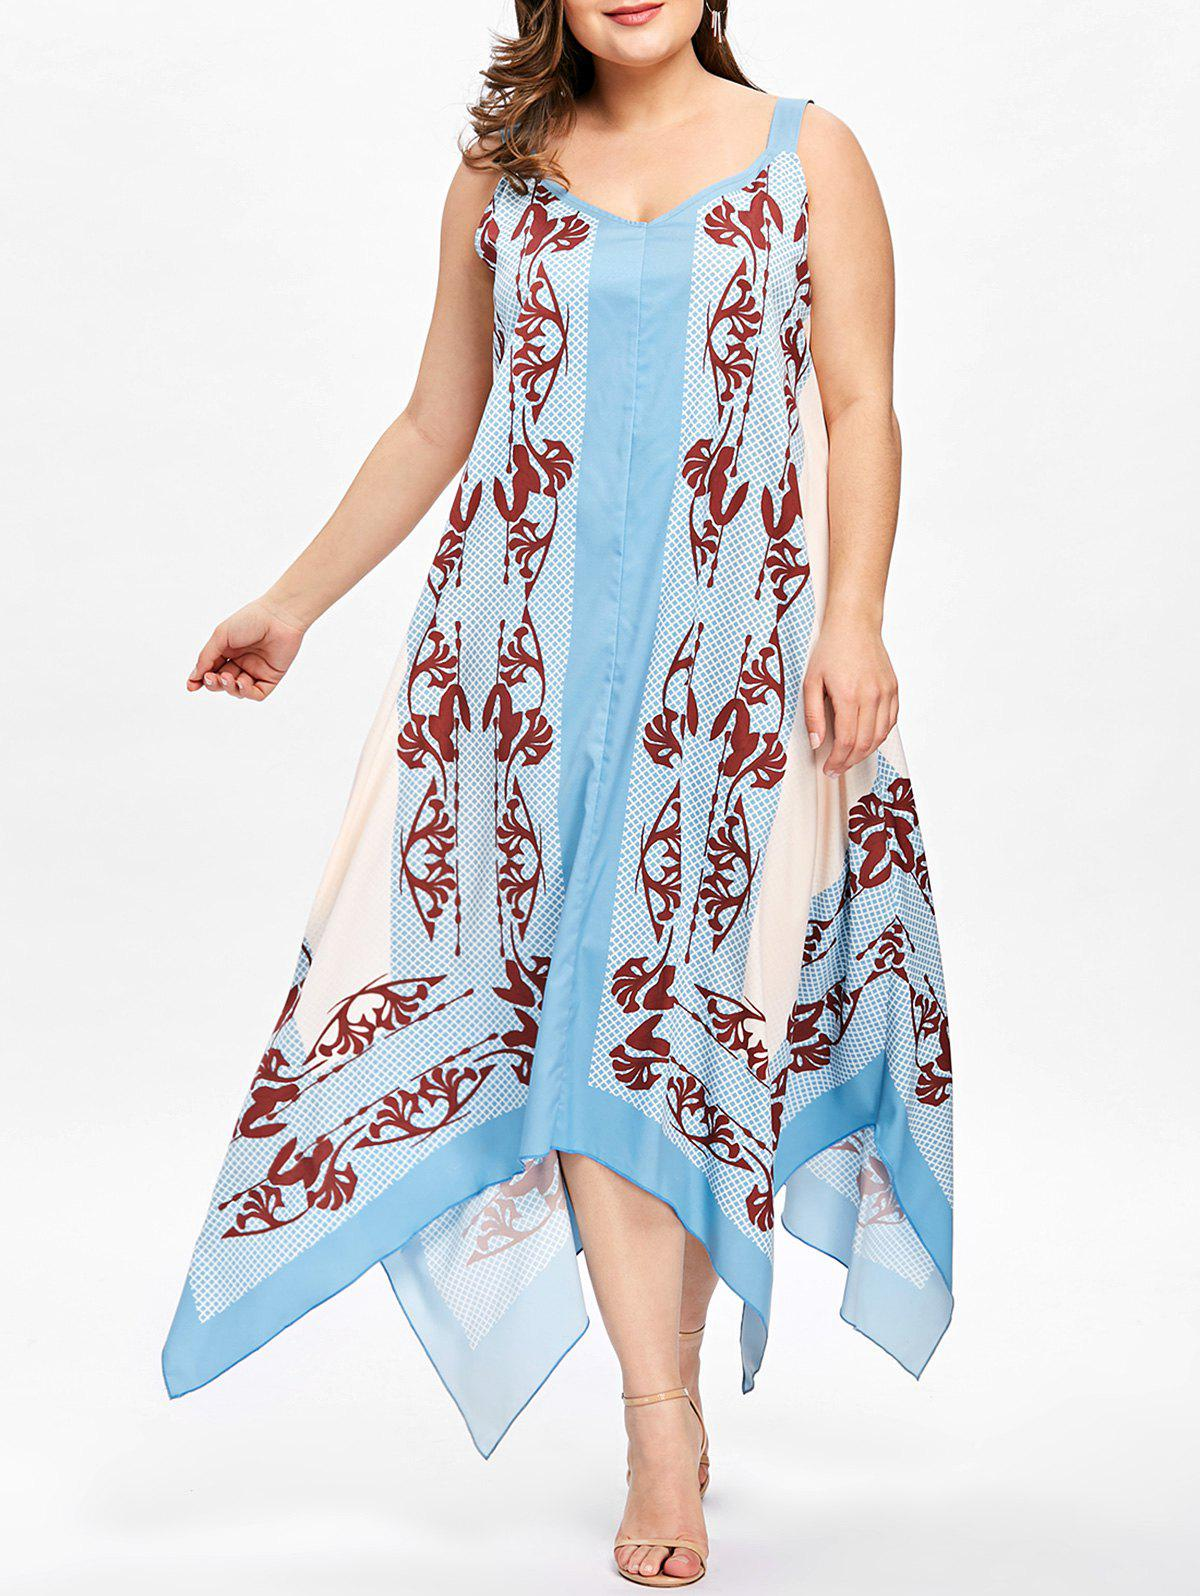 Plus Size Baroque Print Flowing Handkerchief Dress - LIGHT BLUE 4XL